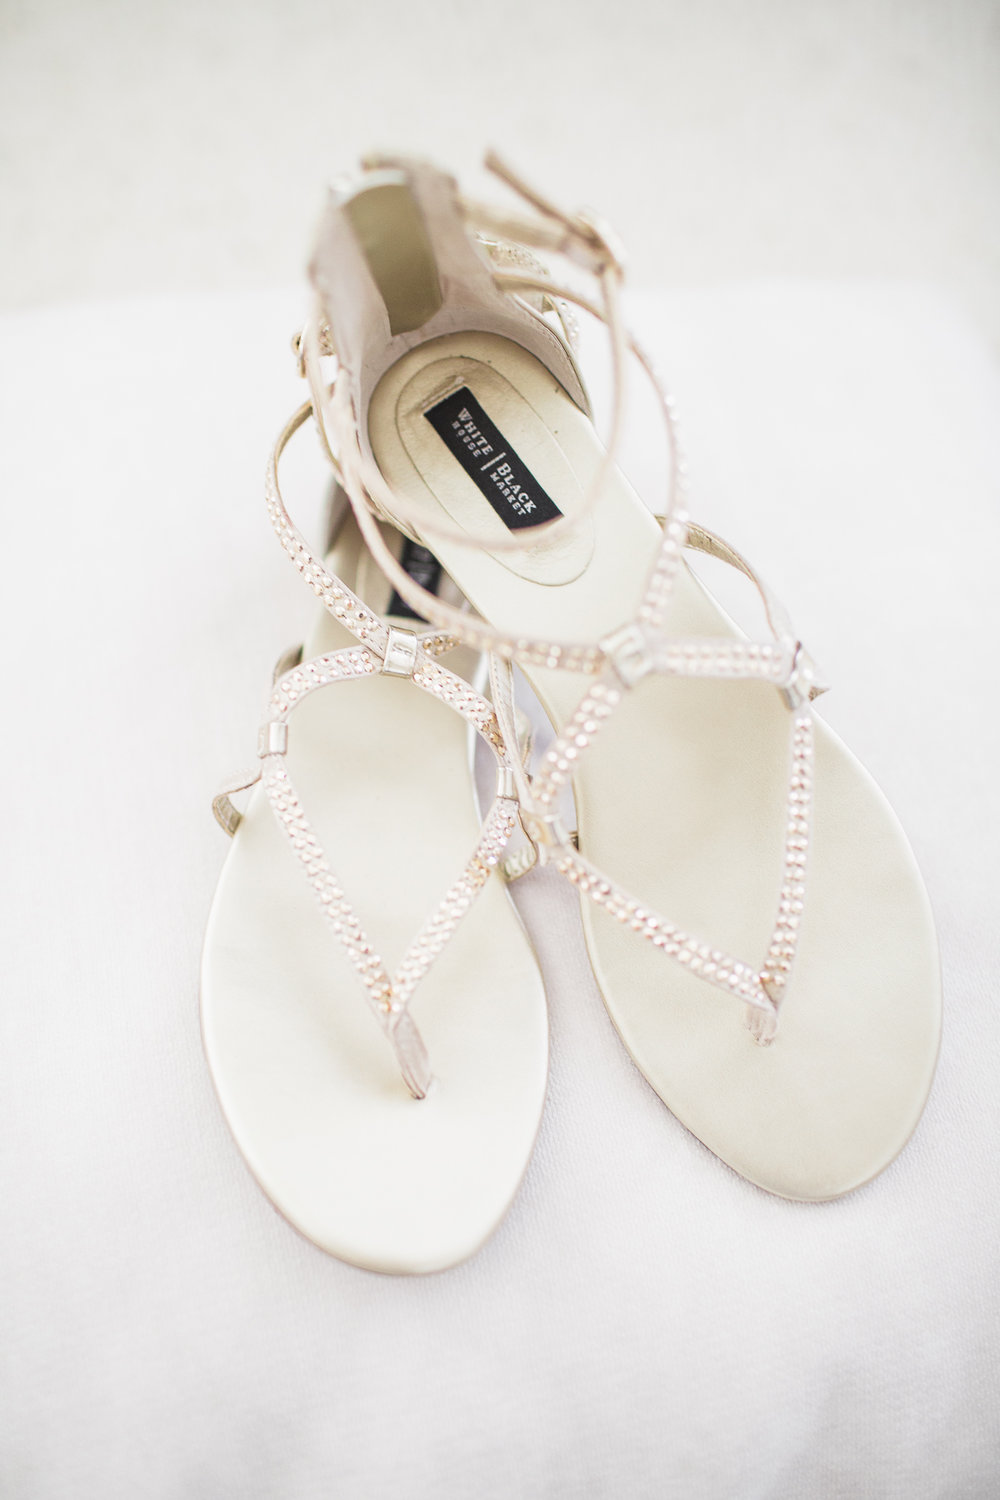 Her gorgeous and comfortable slippers she wore for her ceremony.